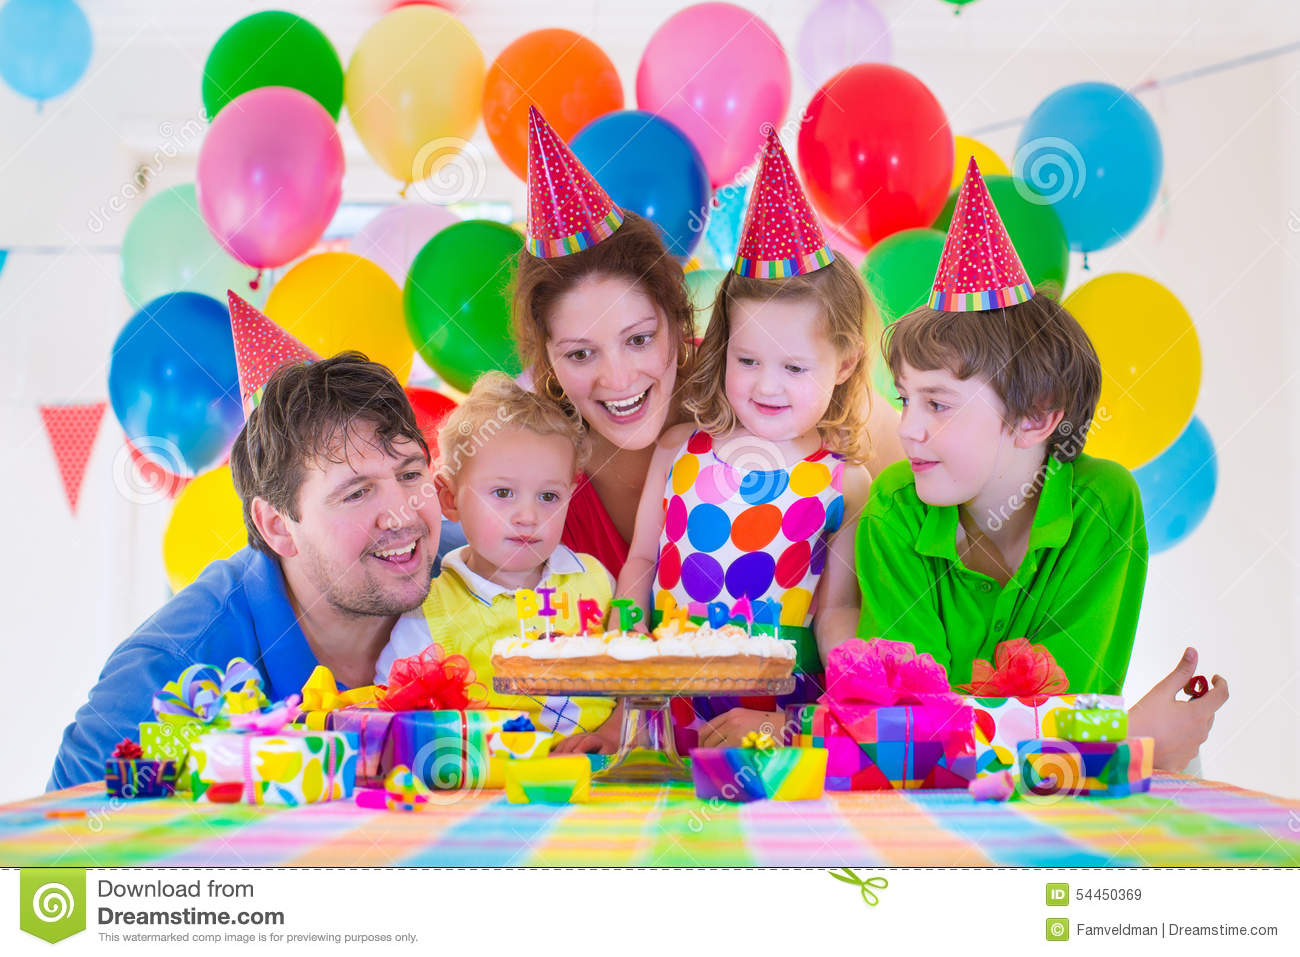 picture of birthday party celebration ; family-celebrating-birthday-party-happy-kids-parents-three-children-celebrate-together-child-baloon-decoration-cake-54450369